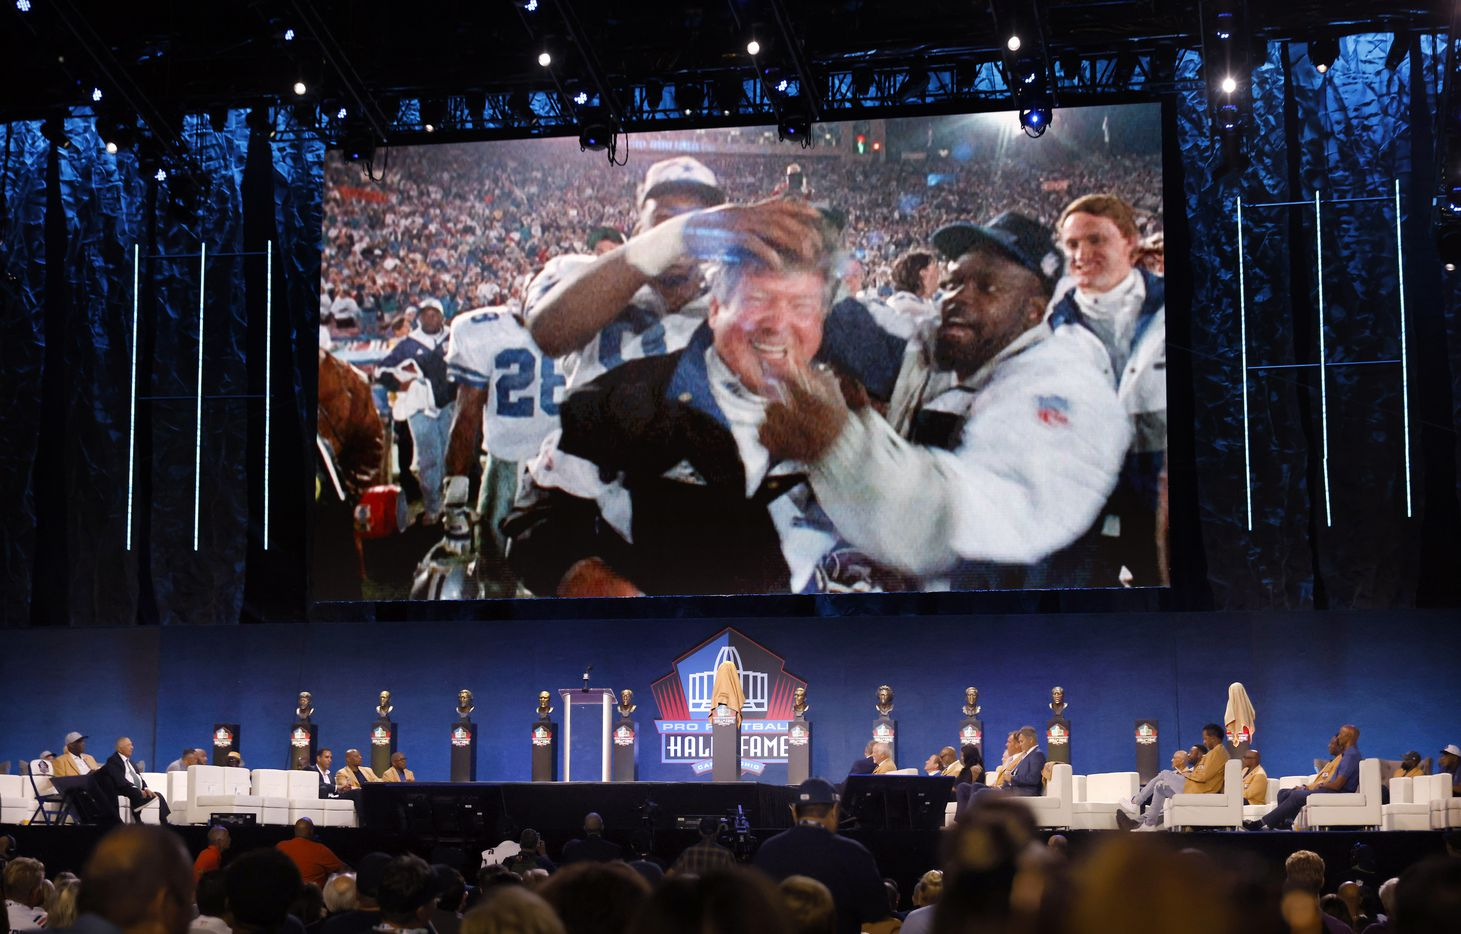 Photos of Pro Football Hall of Fame inductee Jimmy Johnson of the Dallas Cowboys celebrating their Super Bowl win is shown on the video board during the Centennial Class of 2020 enshrinement ceremony at Tom Benson Hall of Fame Stadium in Canton, Ohio, Saturday, August 7, 2021. (Tom Fox/The Dallas Morning News)